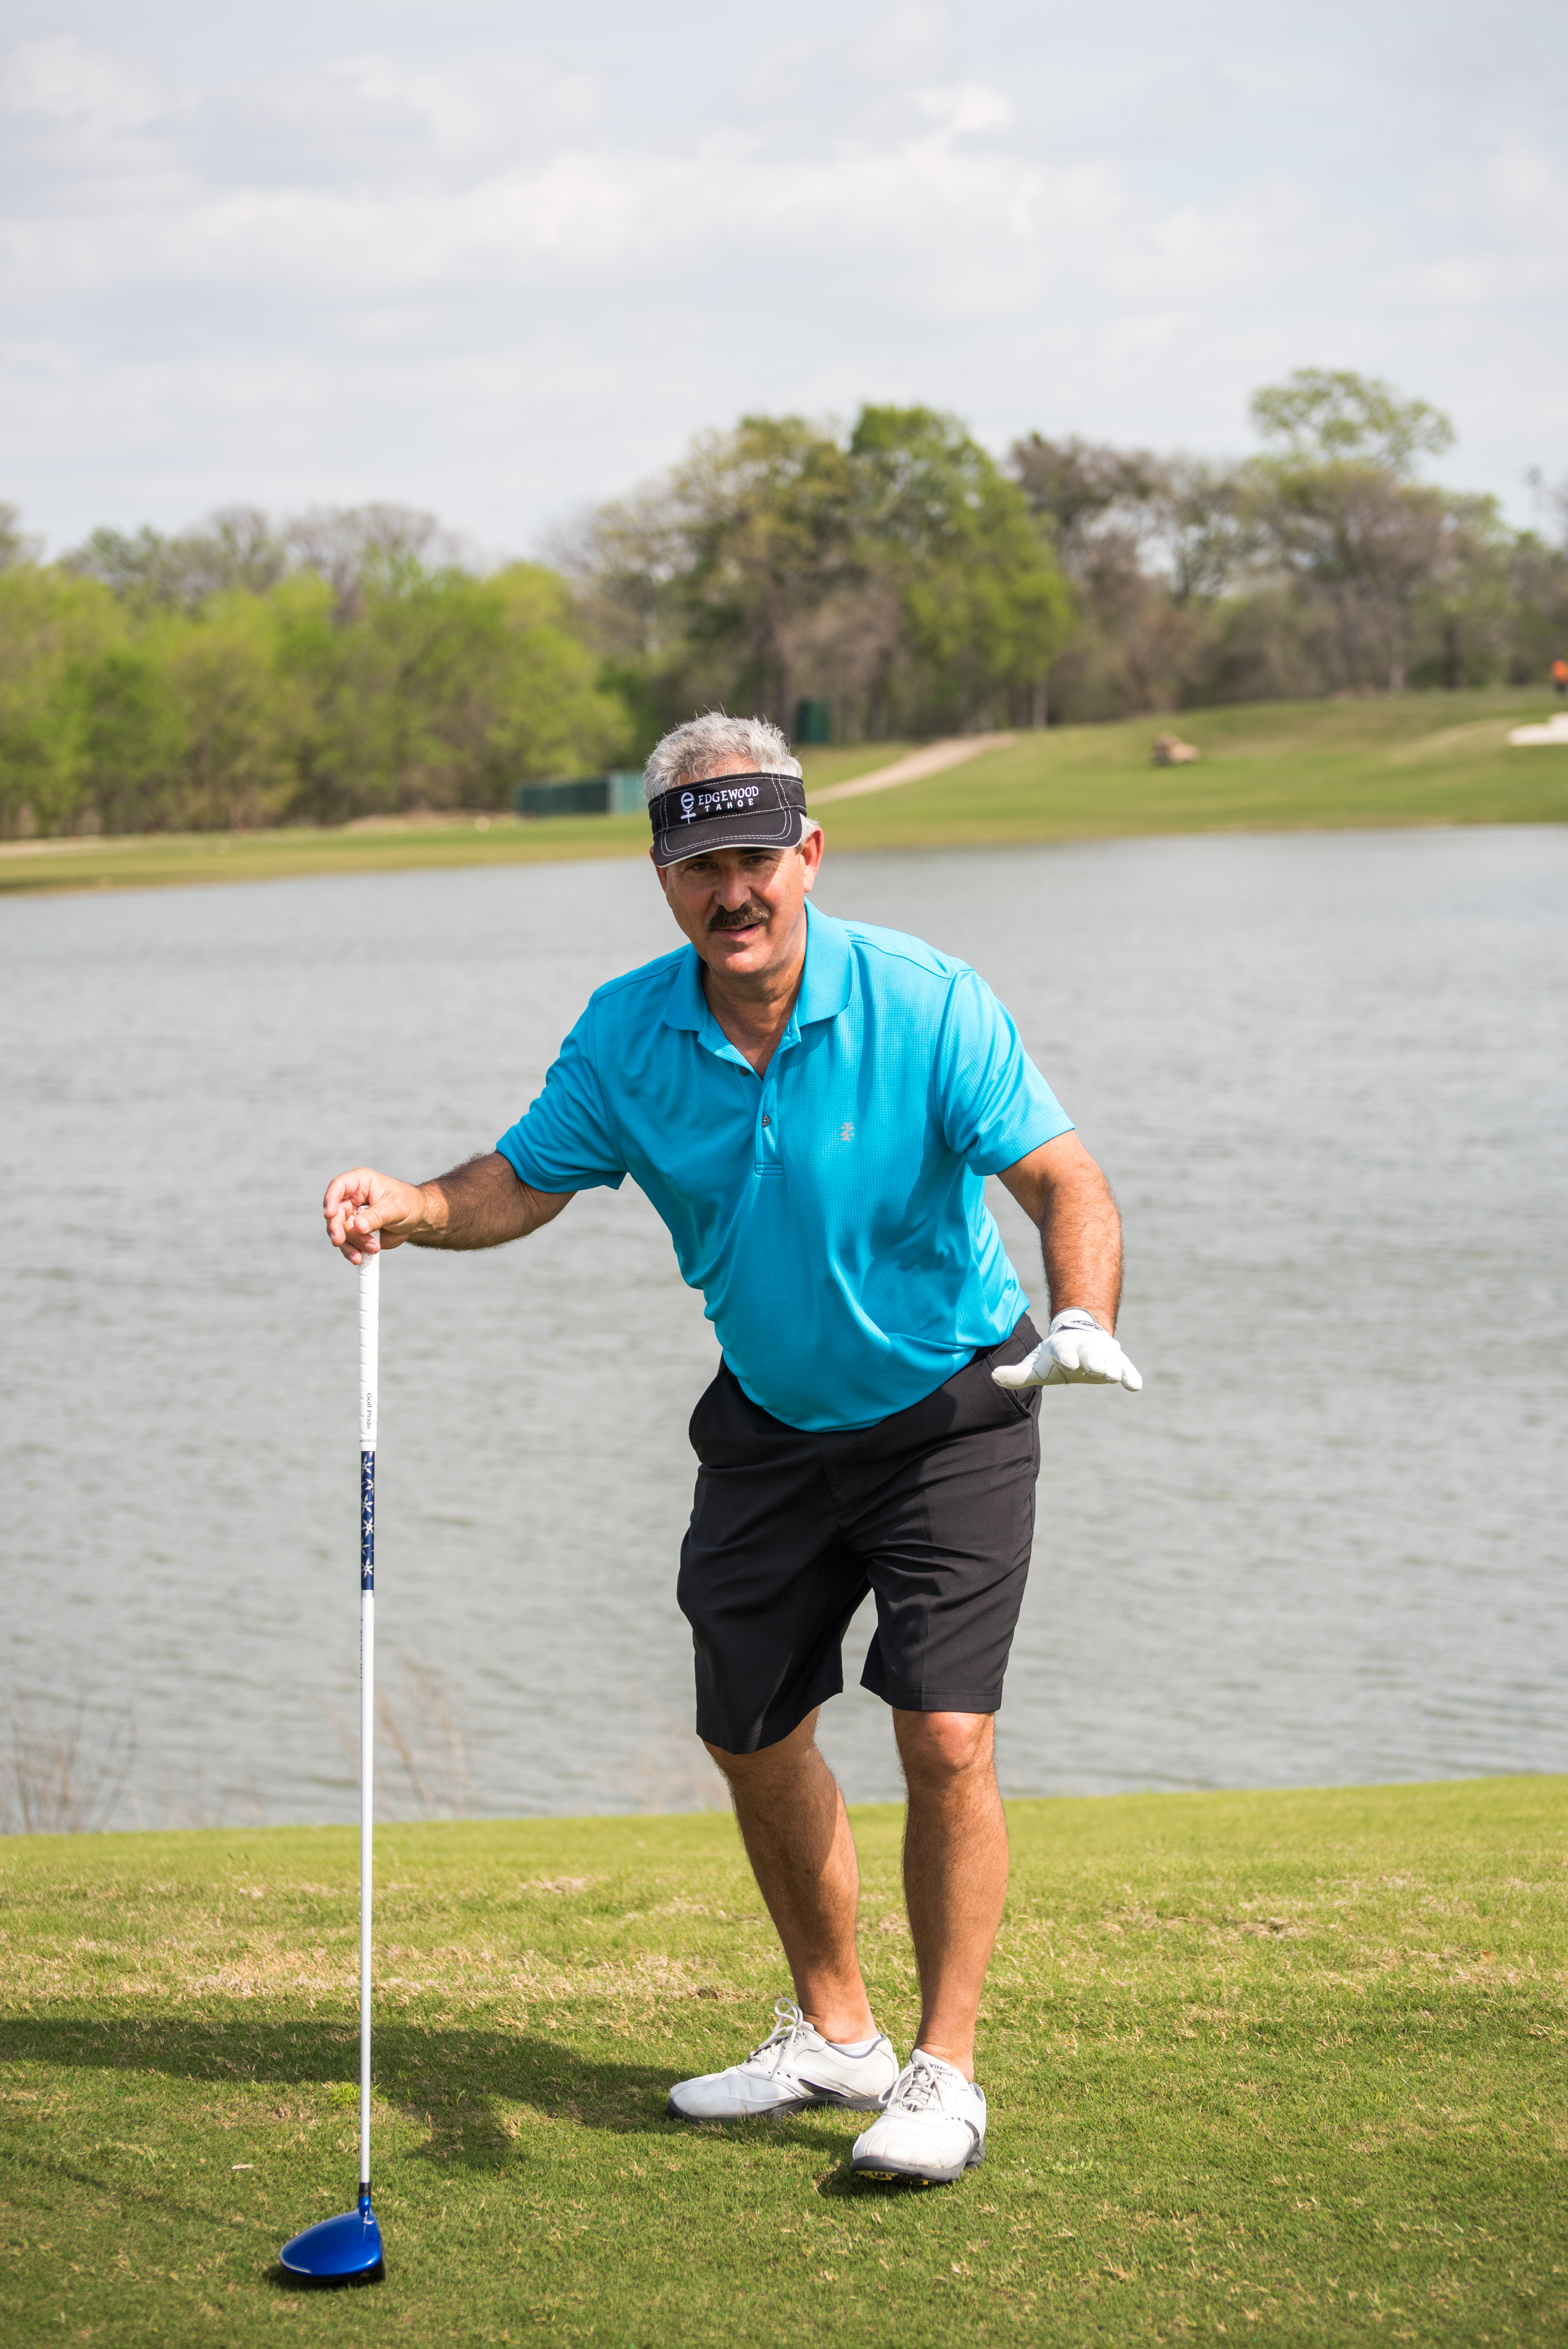 Dallas Ft. Worth Chapter golf tournament, March 23, 2016. (Photo by Ian Womack)